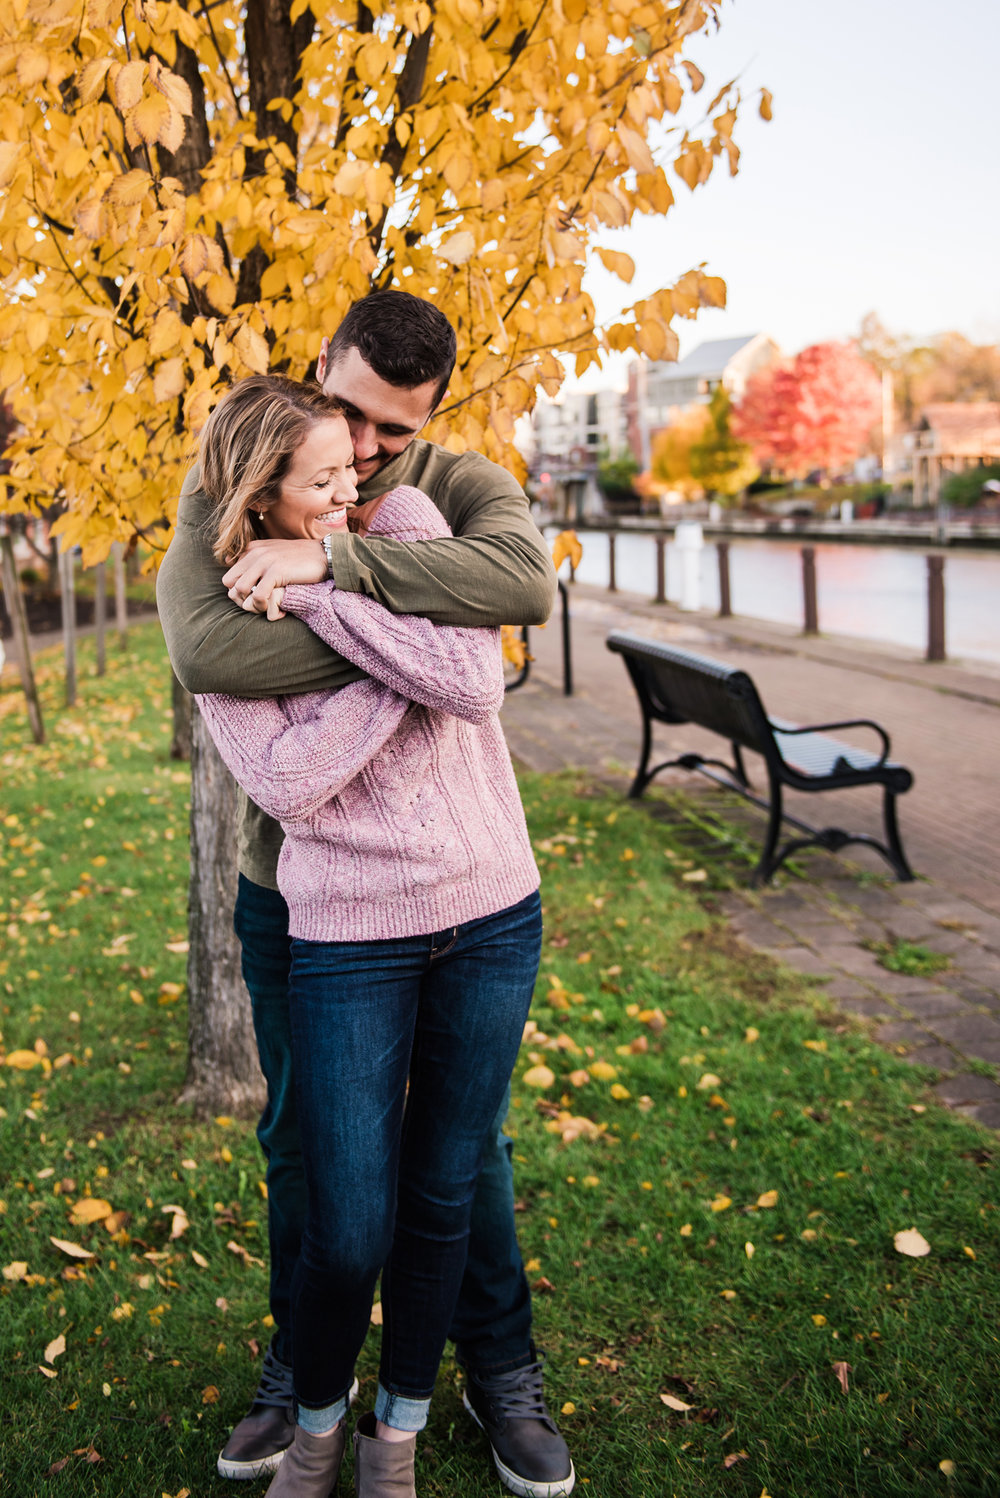 Village_of_Fairport_Rochester_Engagement_Session_JILL_STUDIO_Rochester_NY_Photographer_DSC_8708.jpg